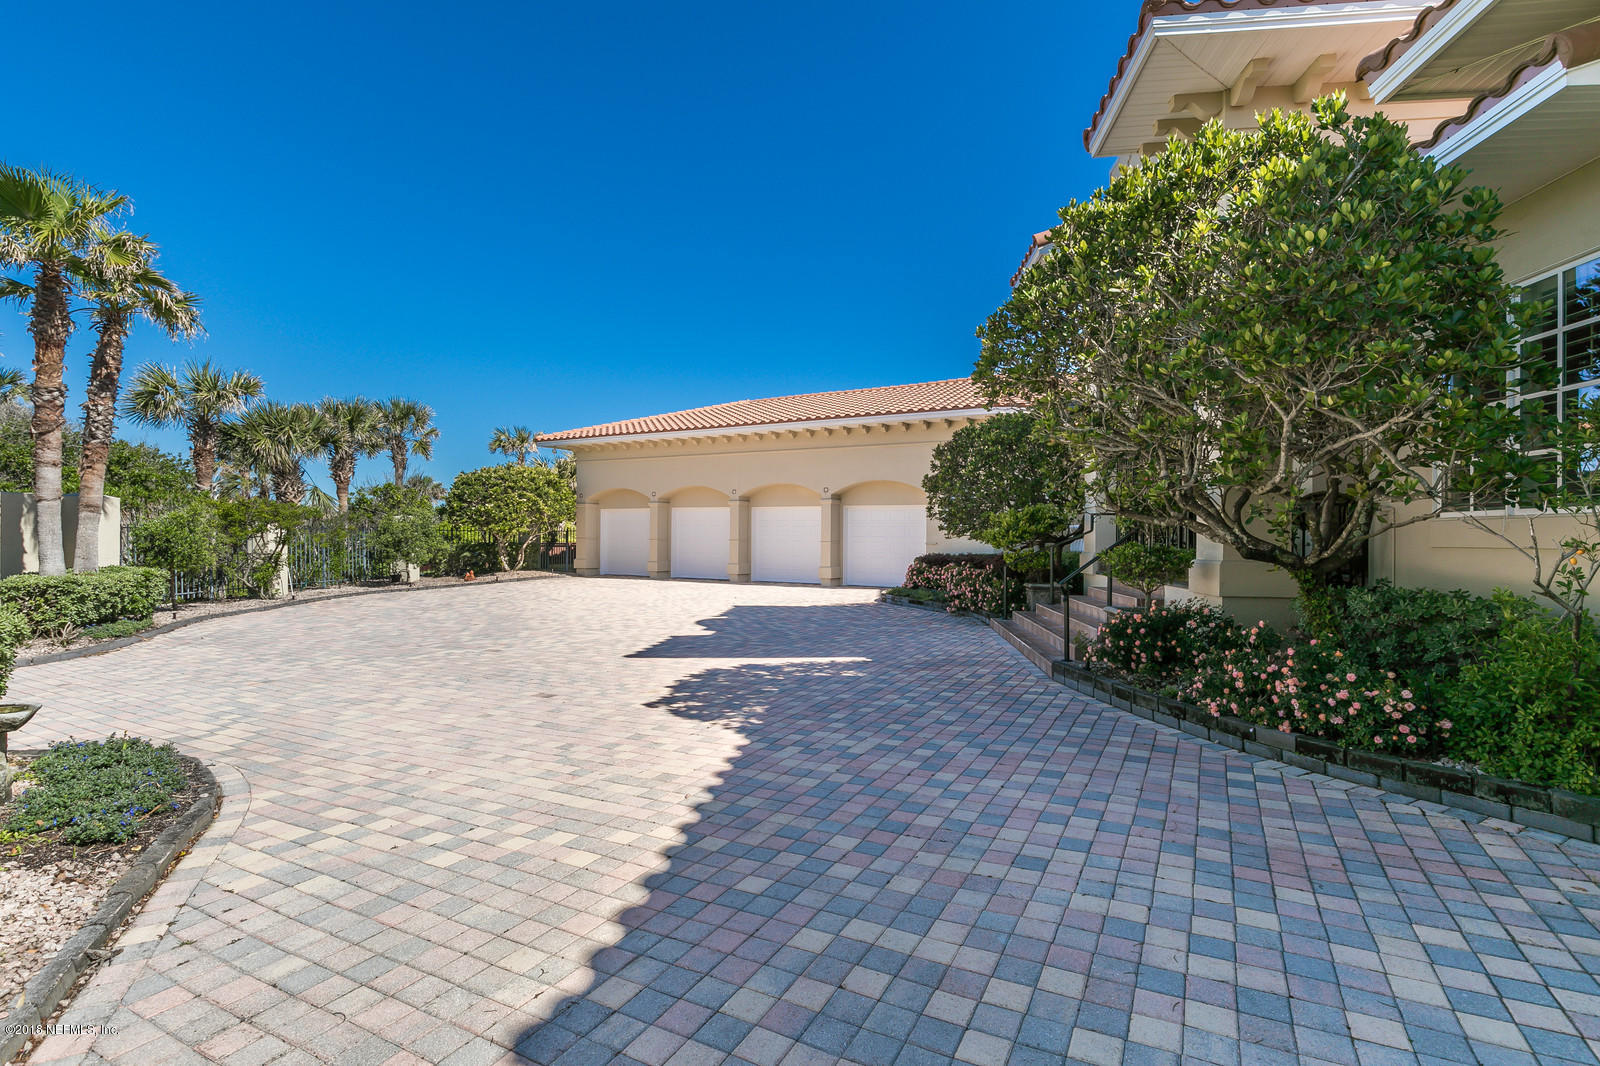 1155 PONTE VEDRA, PONTE VEDRA BEACH, FLORIDA 32082, 5 Bedrooms Bedrooms, ,6 BathroomsBathrooms,Residential - single family,For sale,PONTE VEDRA,933104